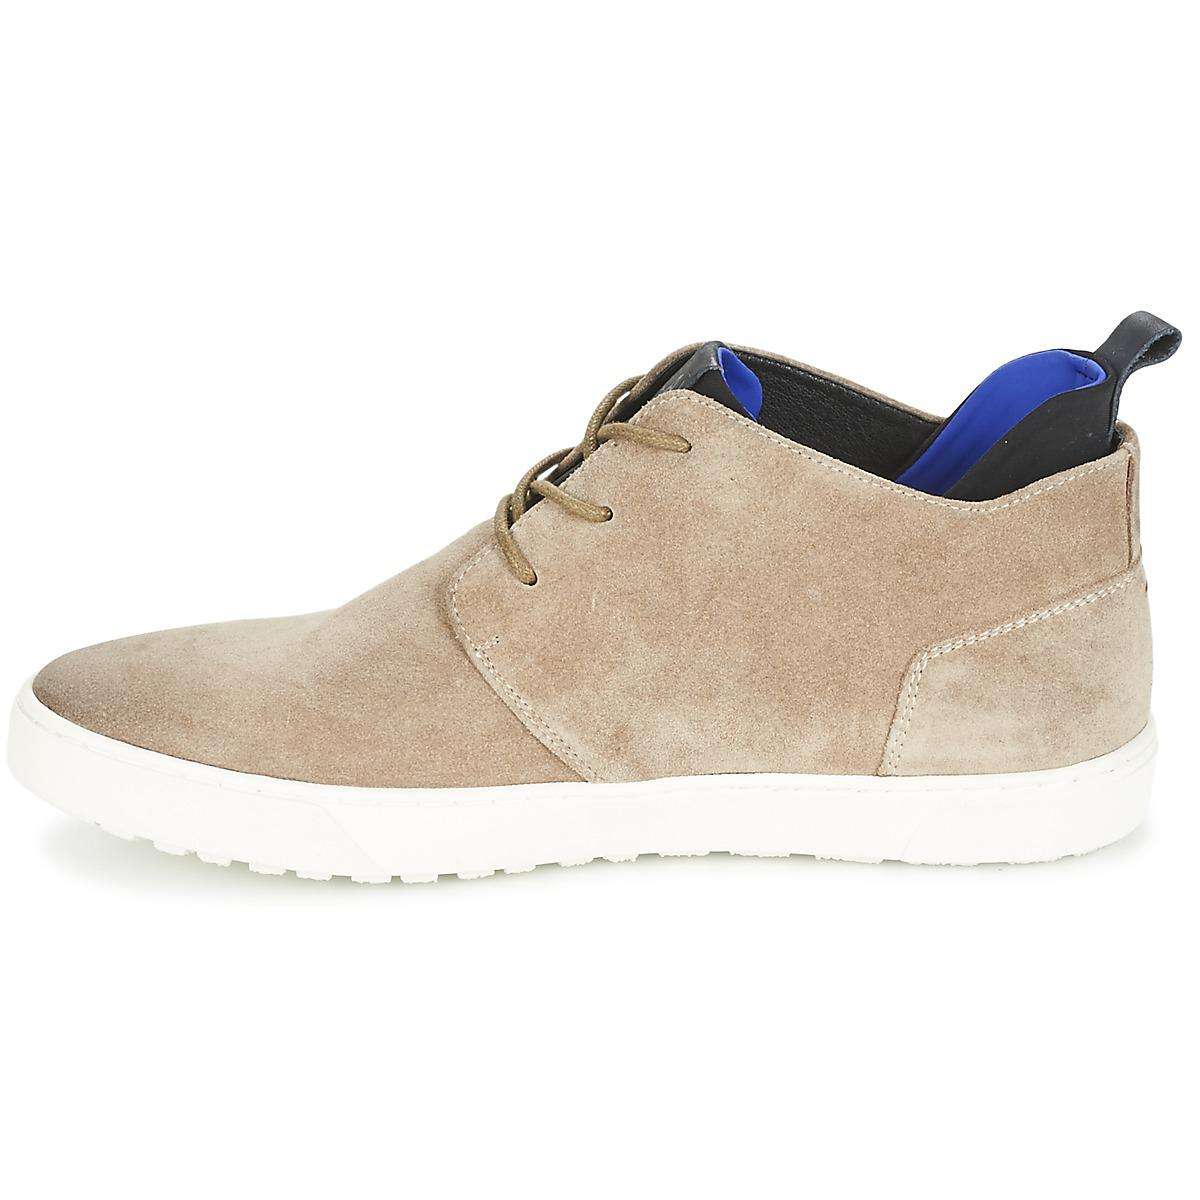 Replay Leather Hydro Shoes (high-top Trainers) in Beige (Natural) for Men